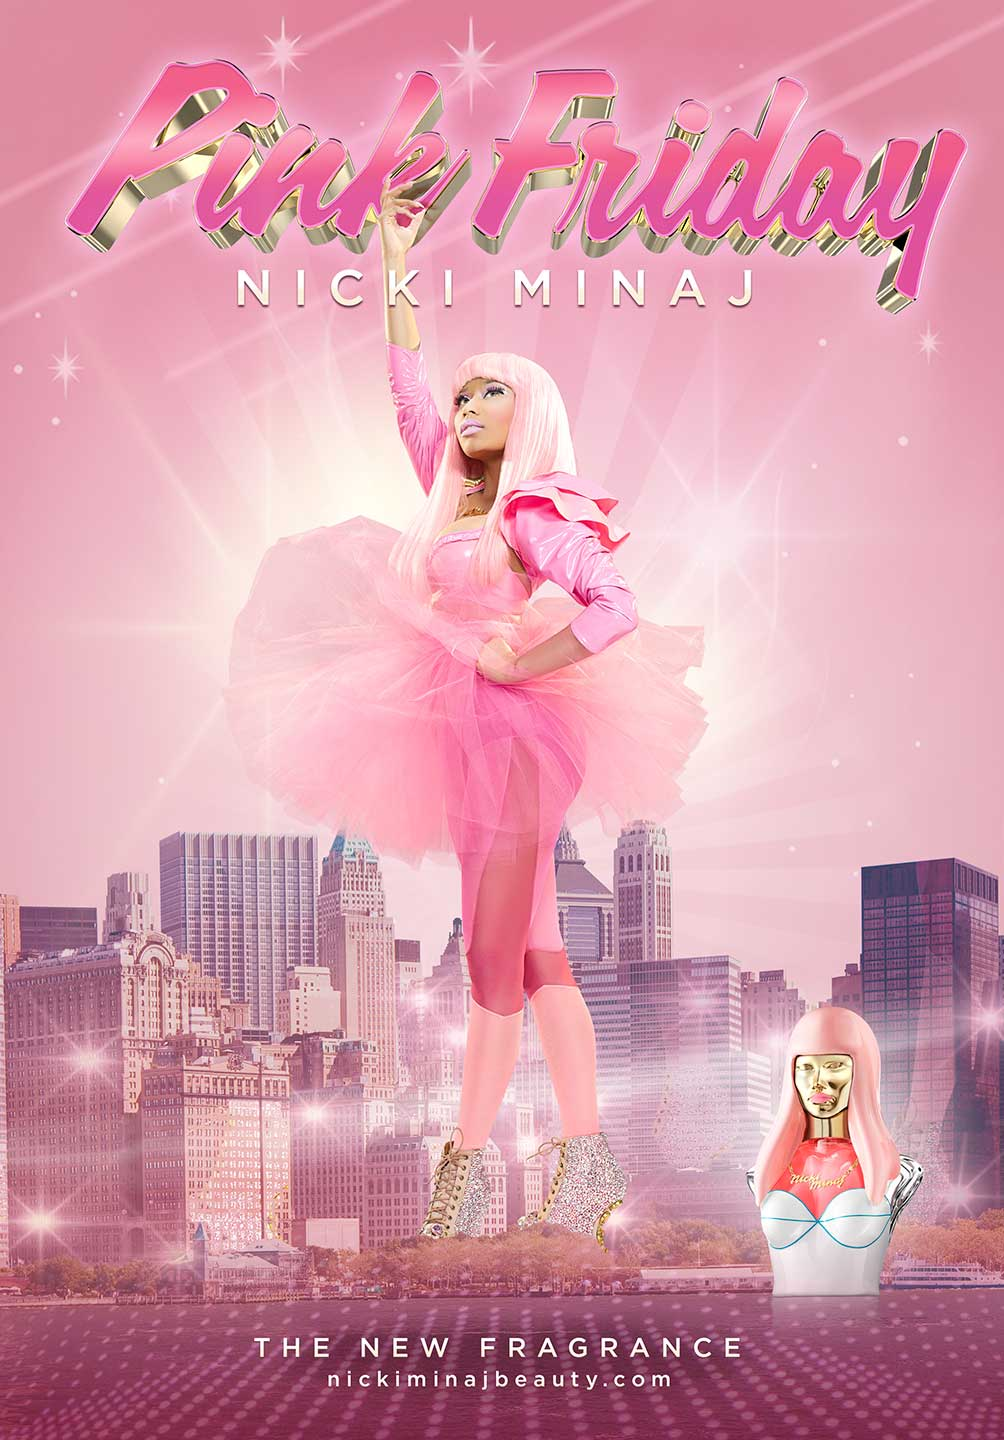 Howard-Huang-People_Nicki_front_Web.jpg